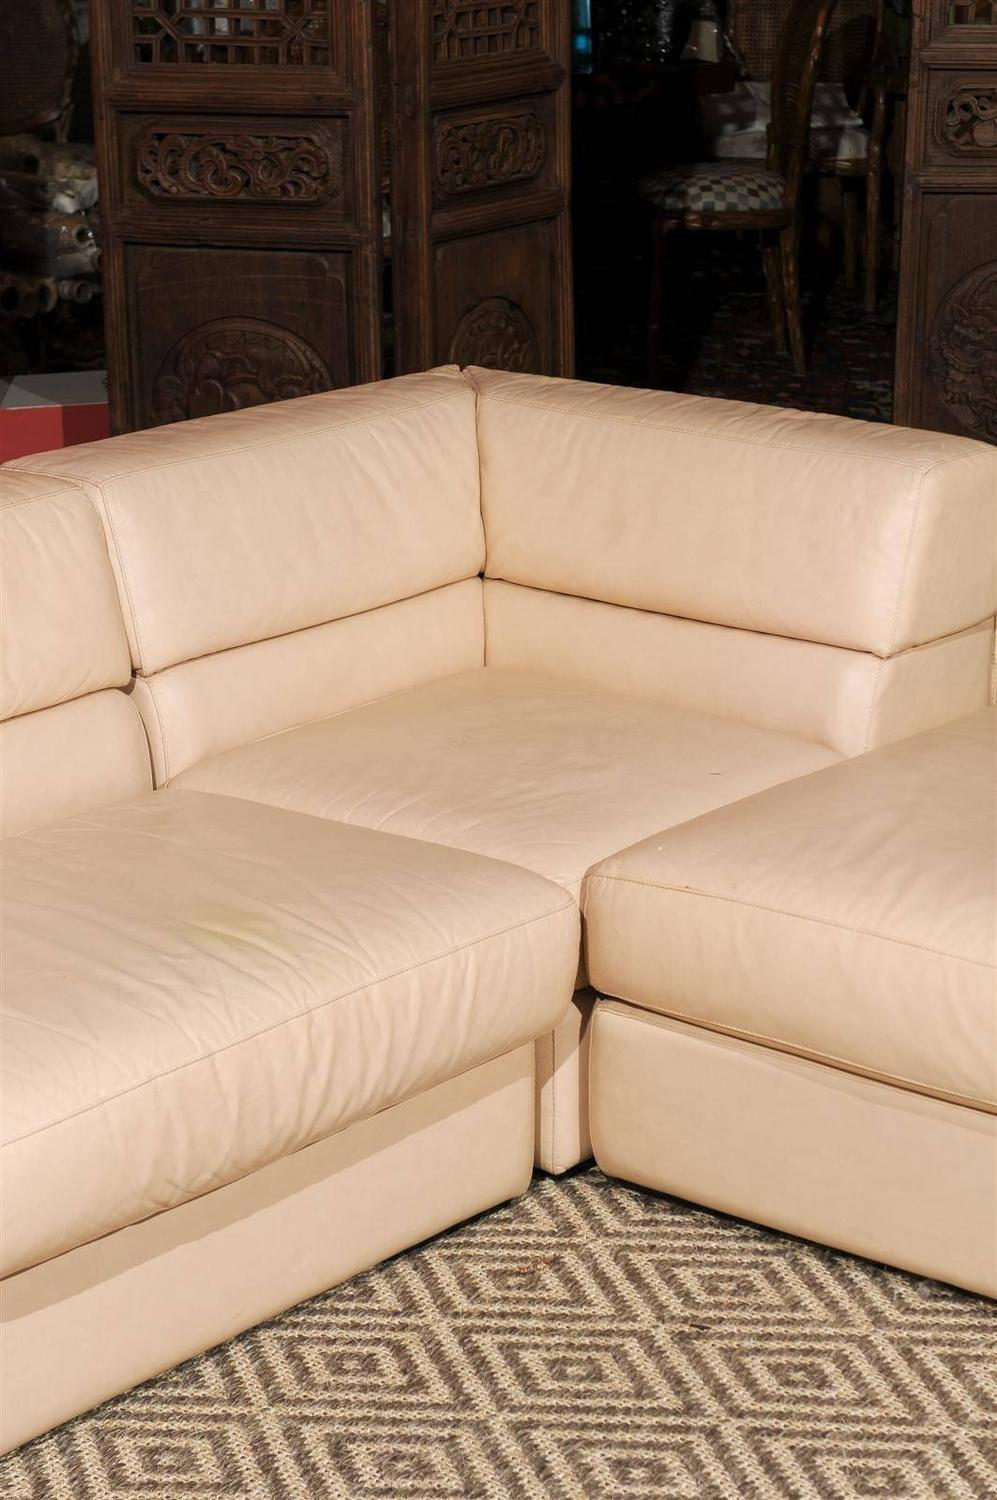 roche bobois leather sectional sofa at 1stdibs. Black Bedroom Furniture Sets. Home Design Ideas